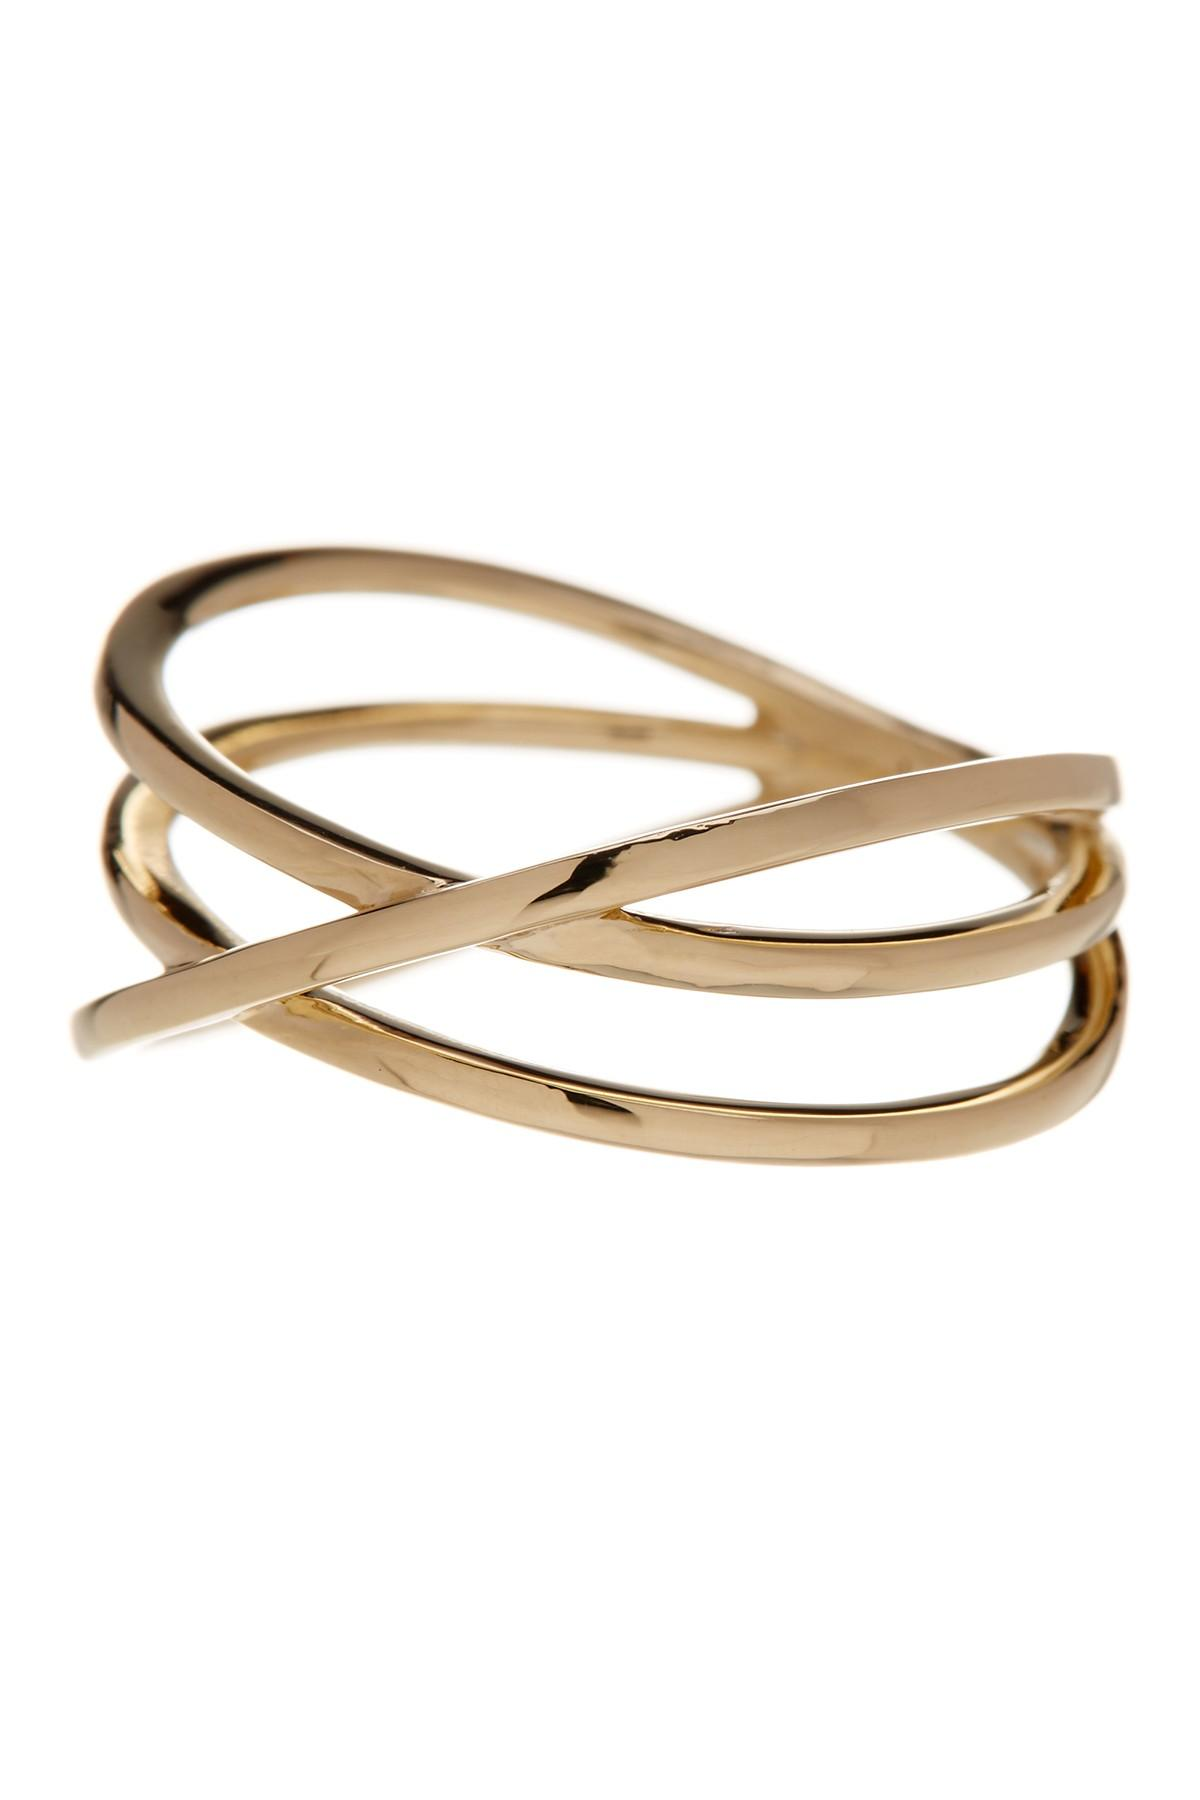 levy jewelry lyst bony levy 14k gold crossover ring in metallic 788